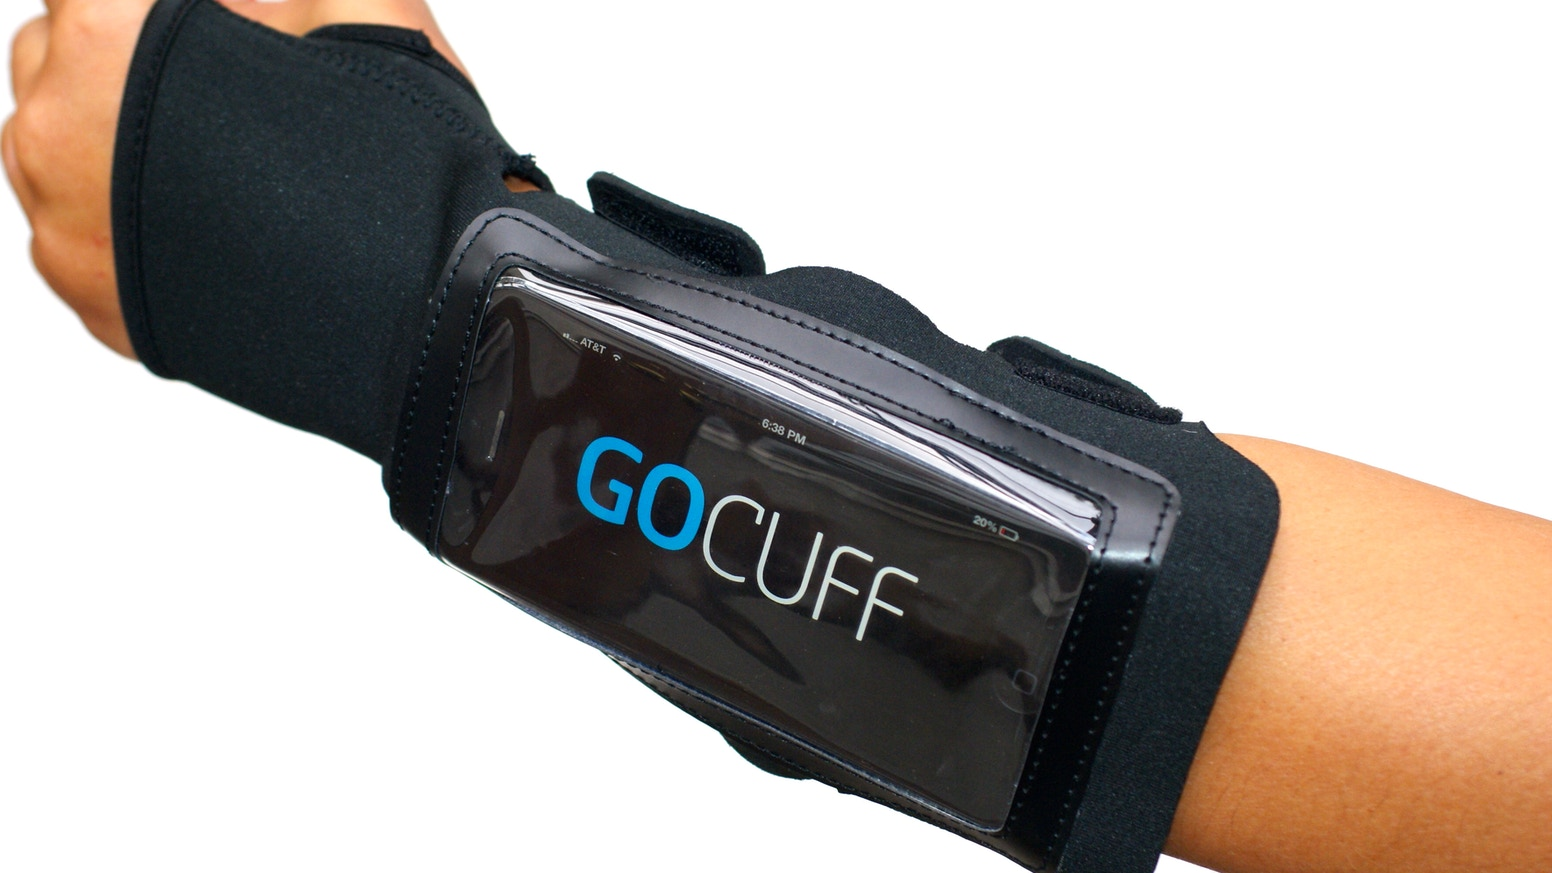 GoCuff - The Most Accessible iPhone/Android Fitness Case by